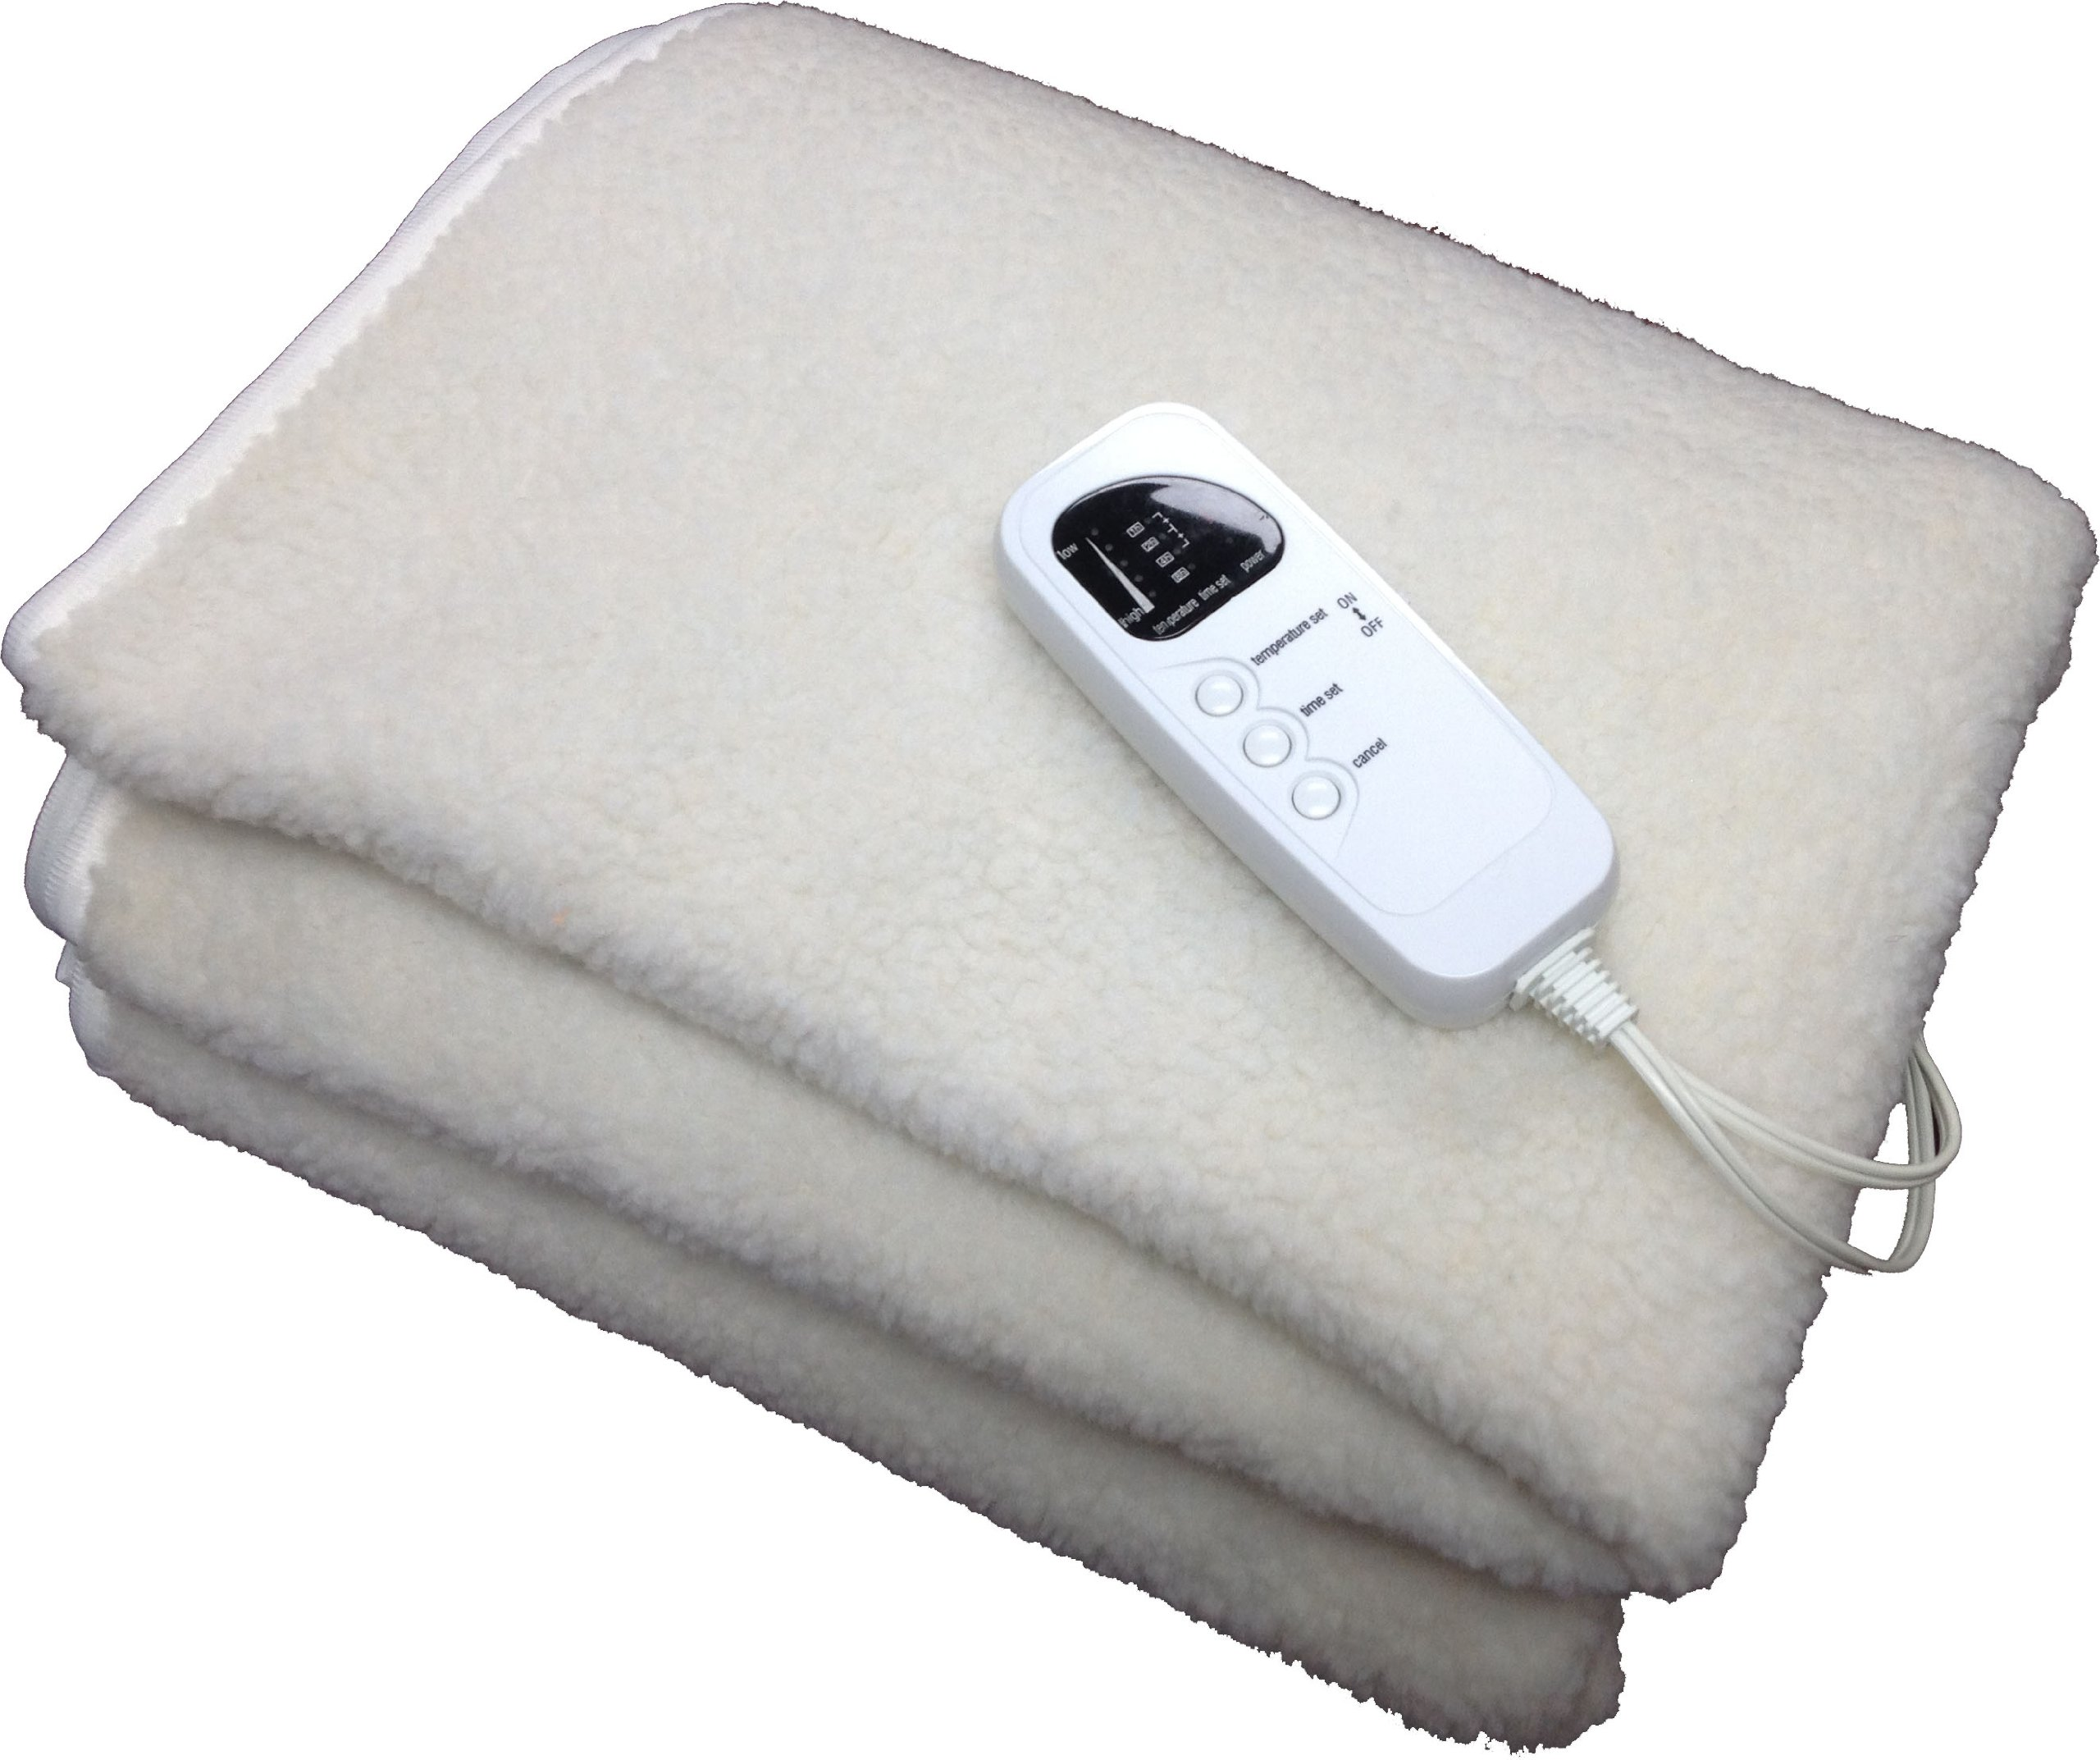 Bed Heater Cheap Bed Foot Warmer Find Bed Foot Warmer Deals On Line At